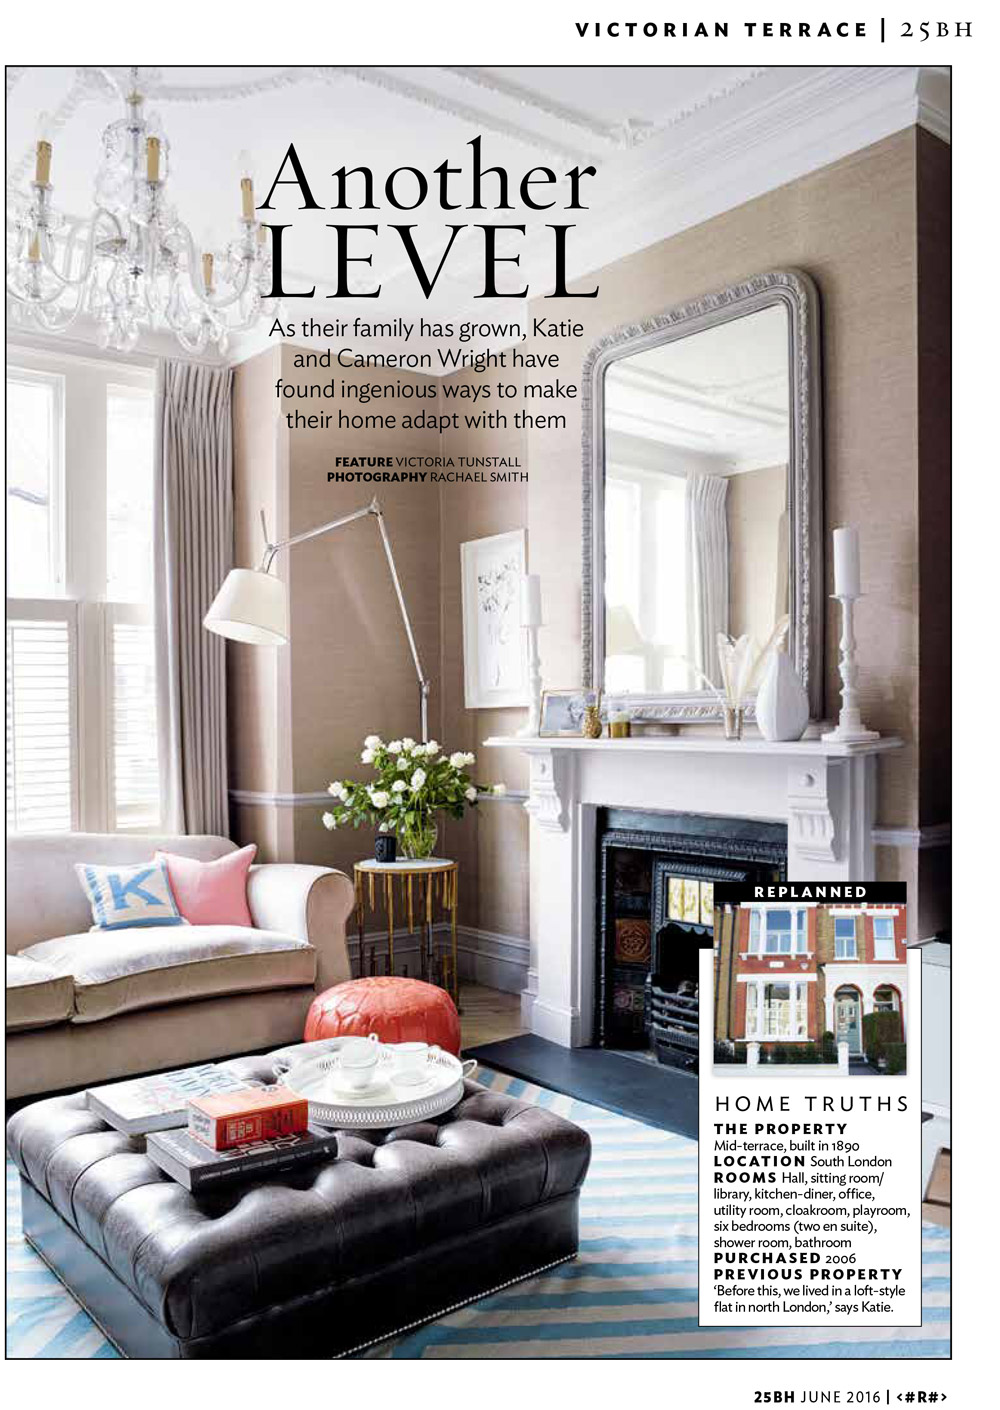 Beautiful Homes Magazine article in 25 beautiful homes magazine - june 2016 - grove interiors